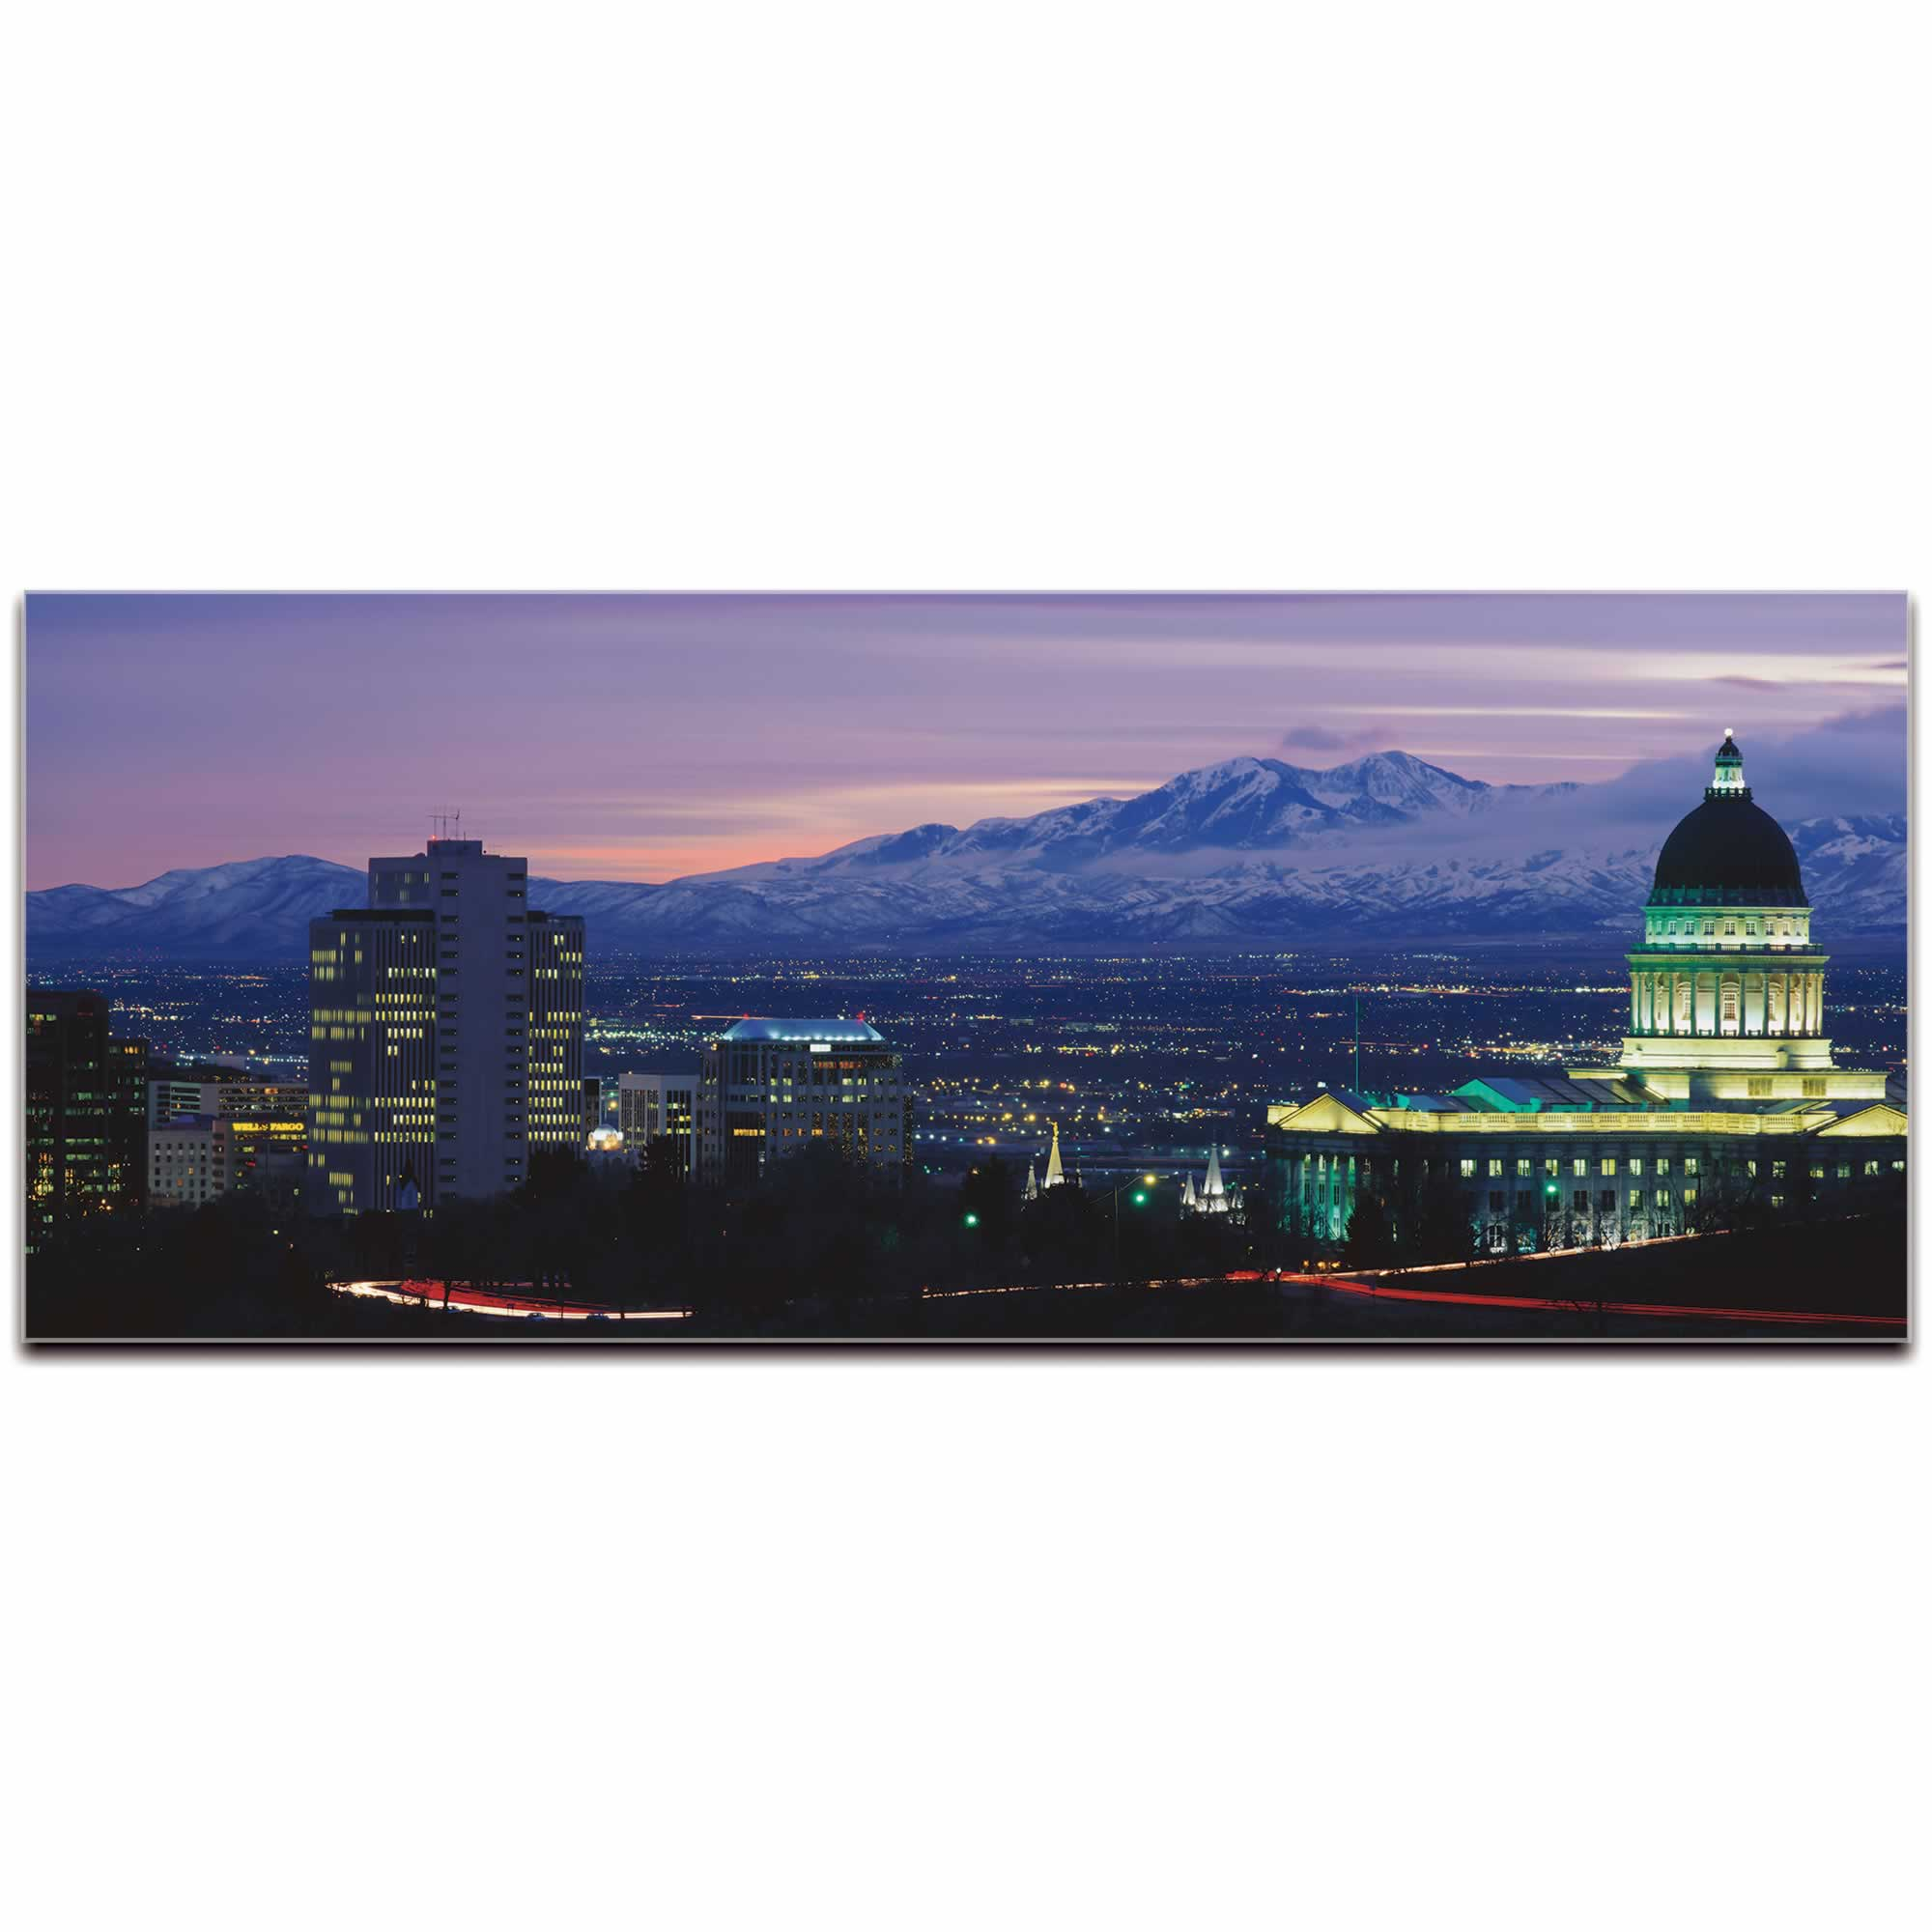 Salt Lake City Skyline - Urban Modern Art, Designer Home Decor, Cityscape Wall Artwork, Trendy Contemporary Art